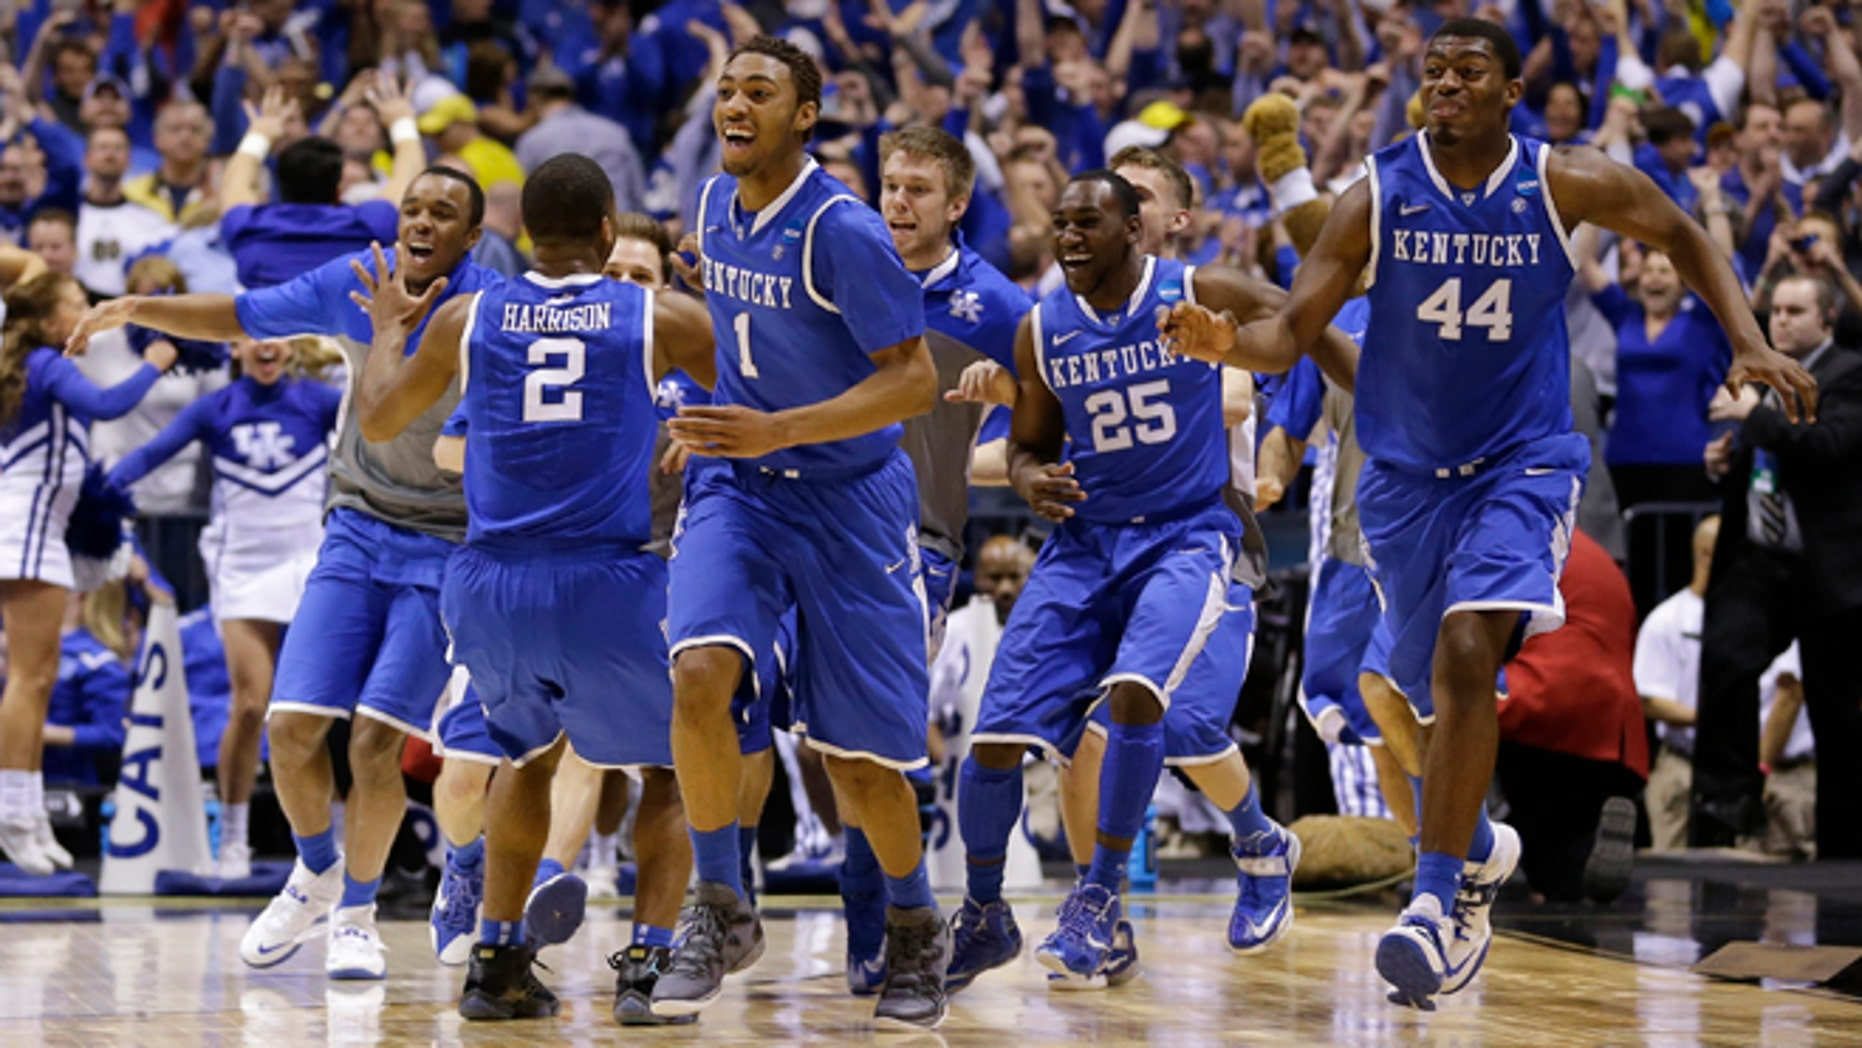 March 30, 2014: Kentucky players celebrate after an NCAA Midwest Regional final college basketball tournament game against Michigan to advance to the Final Four.